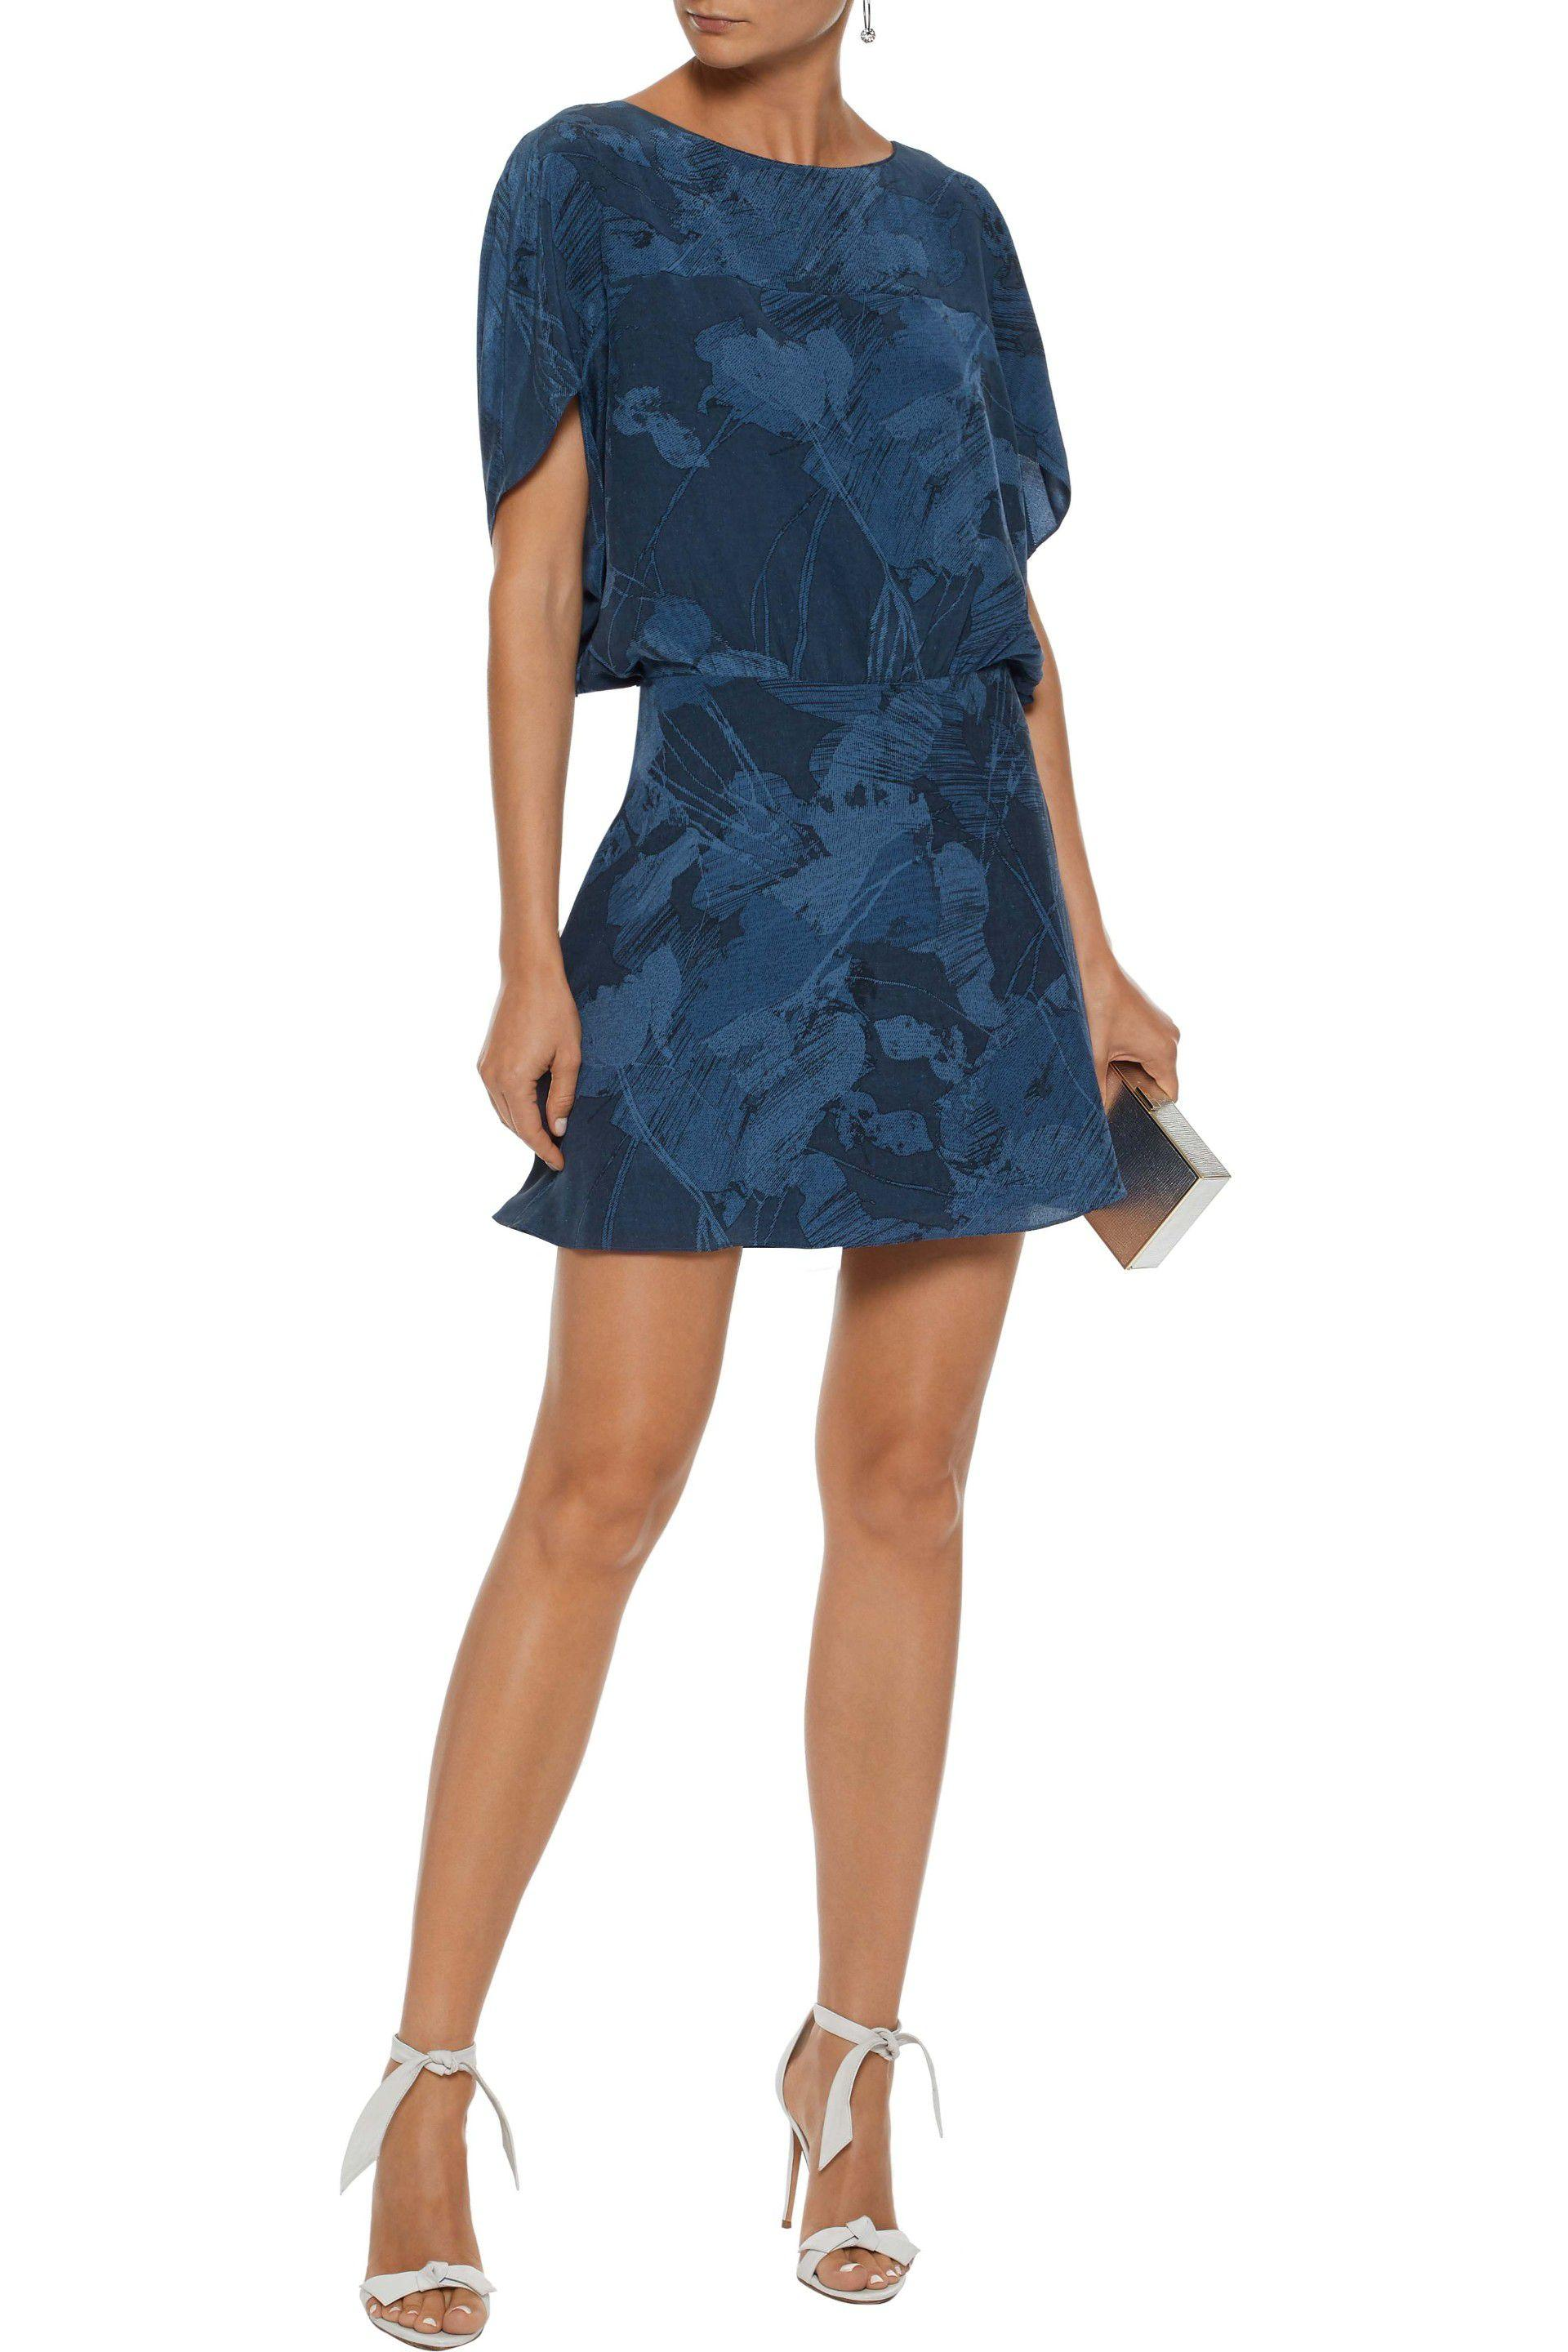 516644c2e1e Halston Woman Gathered Printed Silk-chiffon Mini Dress Navy in Blue ...